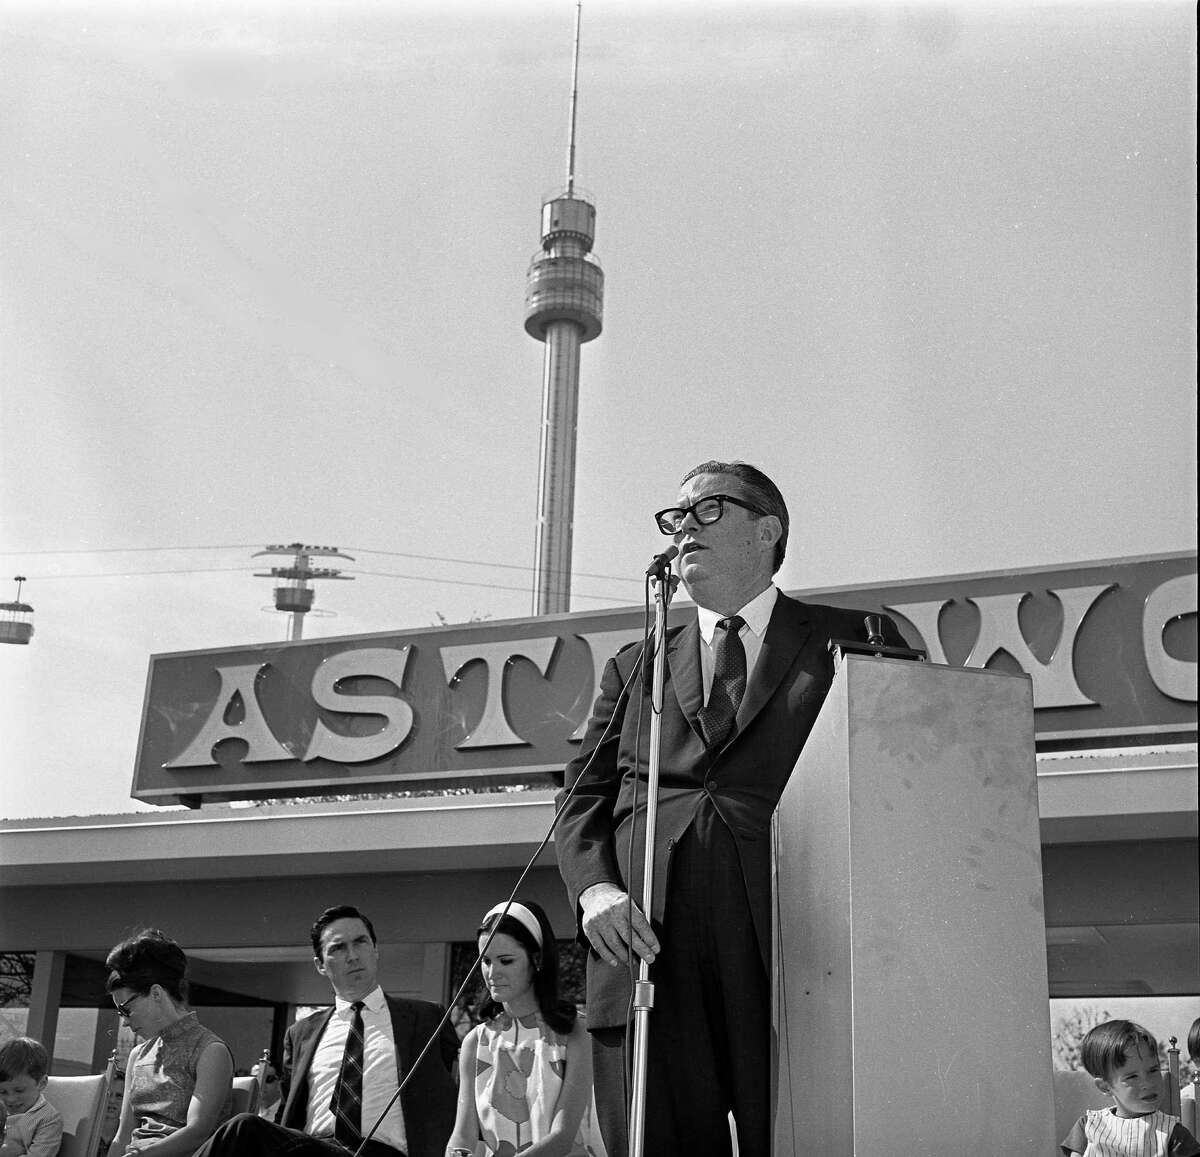 06/01/1968 - Roy Hofheinz welcomes visitors at opening ceremonies for Astroworld, his new 57-acre amusement park in the Astrodomain complex in Houston. His son, Fred, and daughter, Dene, are seen behind him on the platform in front of the park gates.